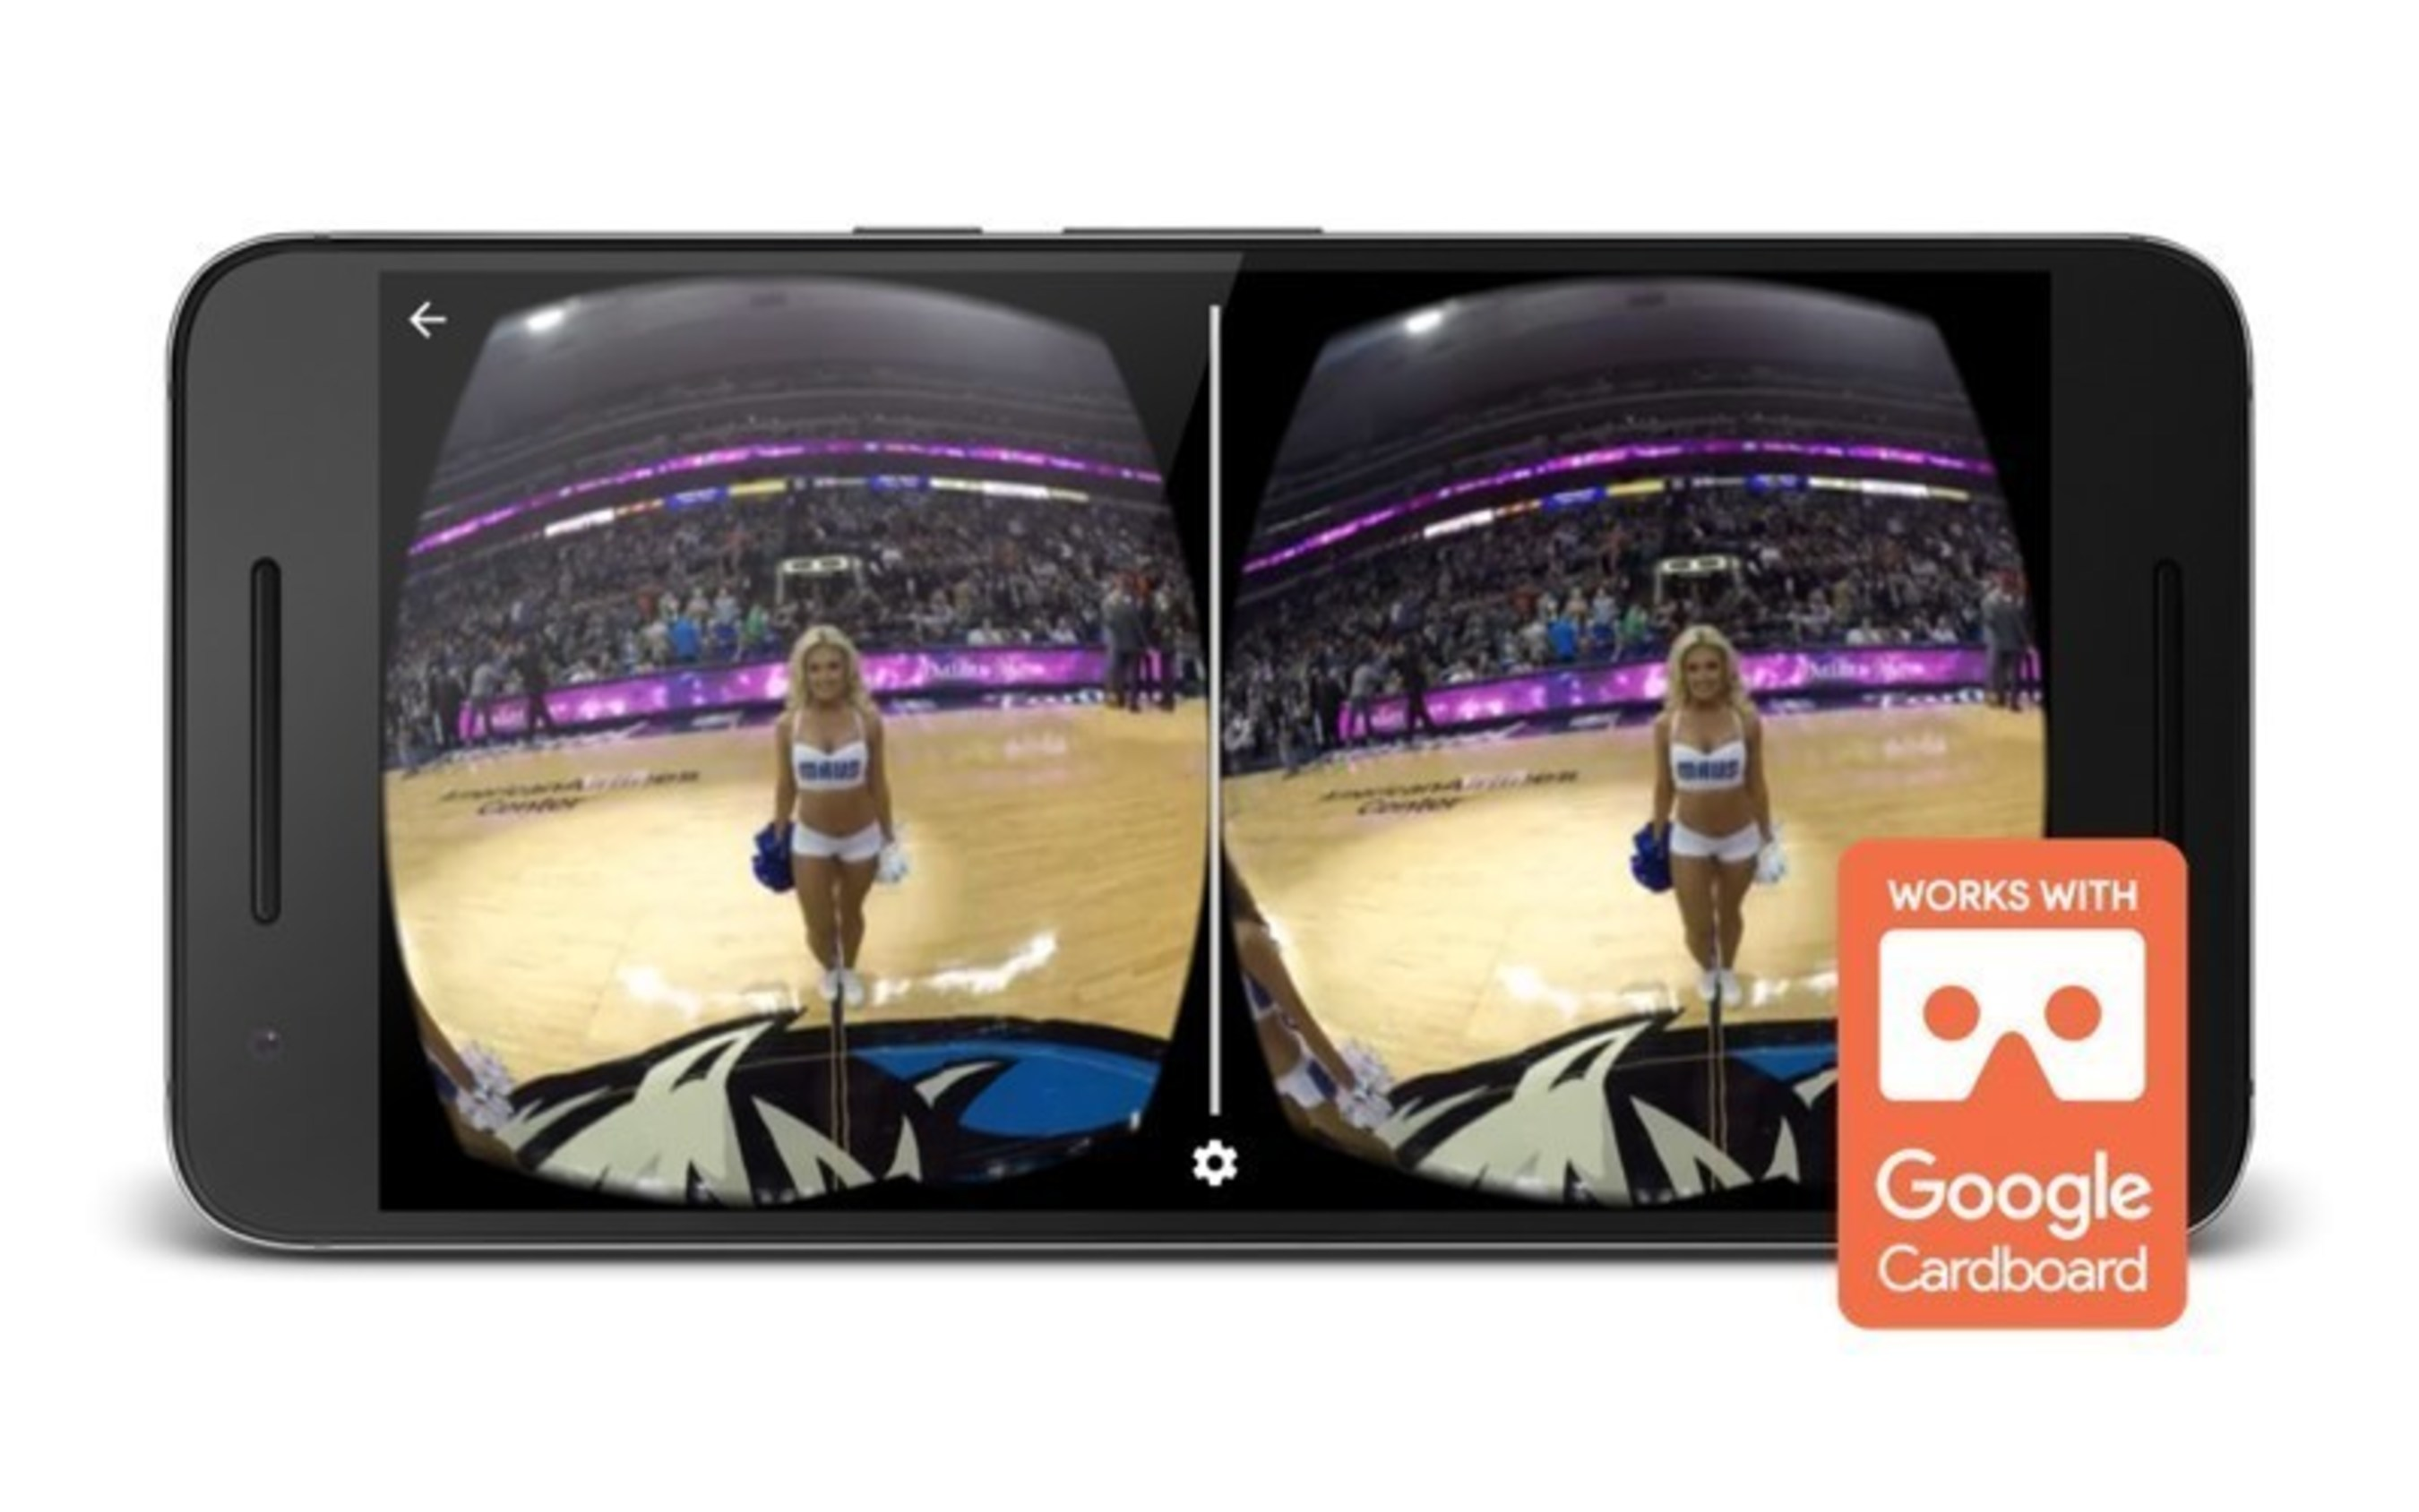 Fans can experience Mavericks action in VR using the mobile app's 360-degree video feature.